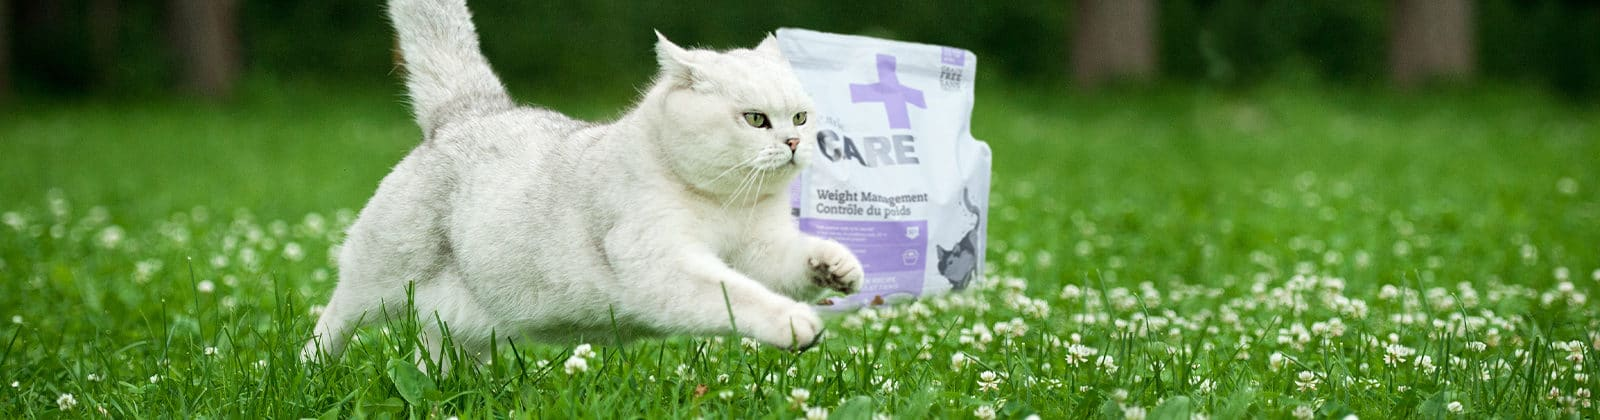 Nutrience Care Weight Management Cat